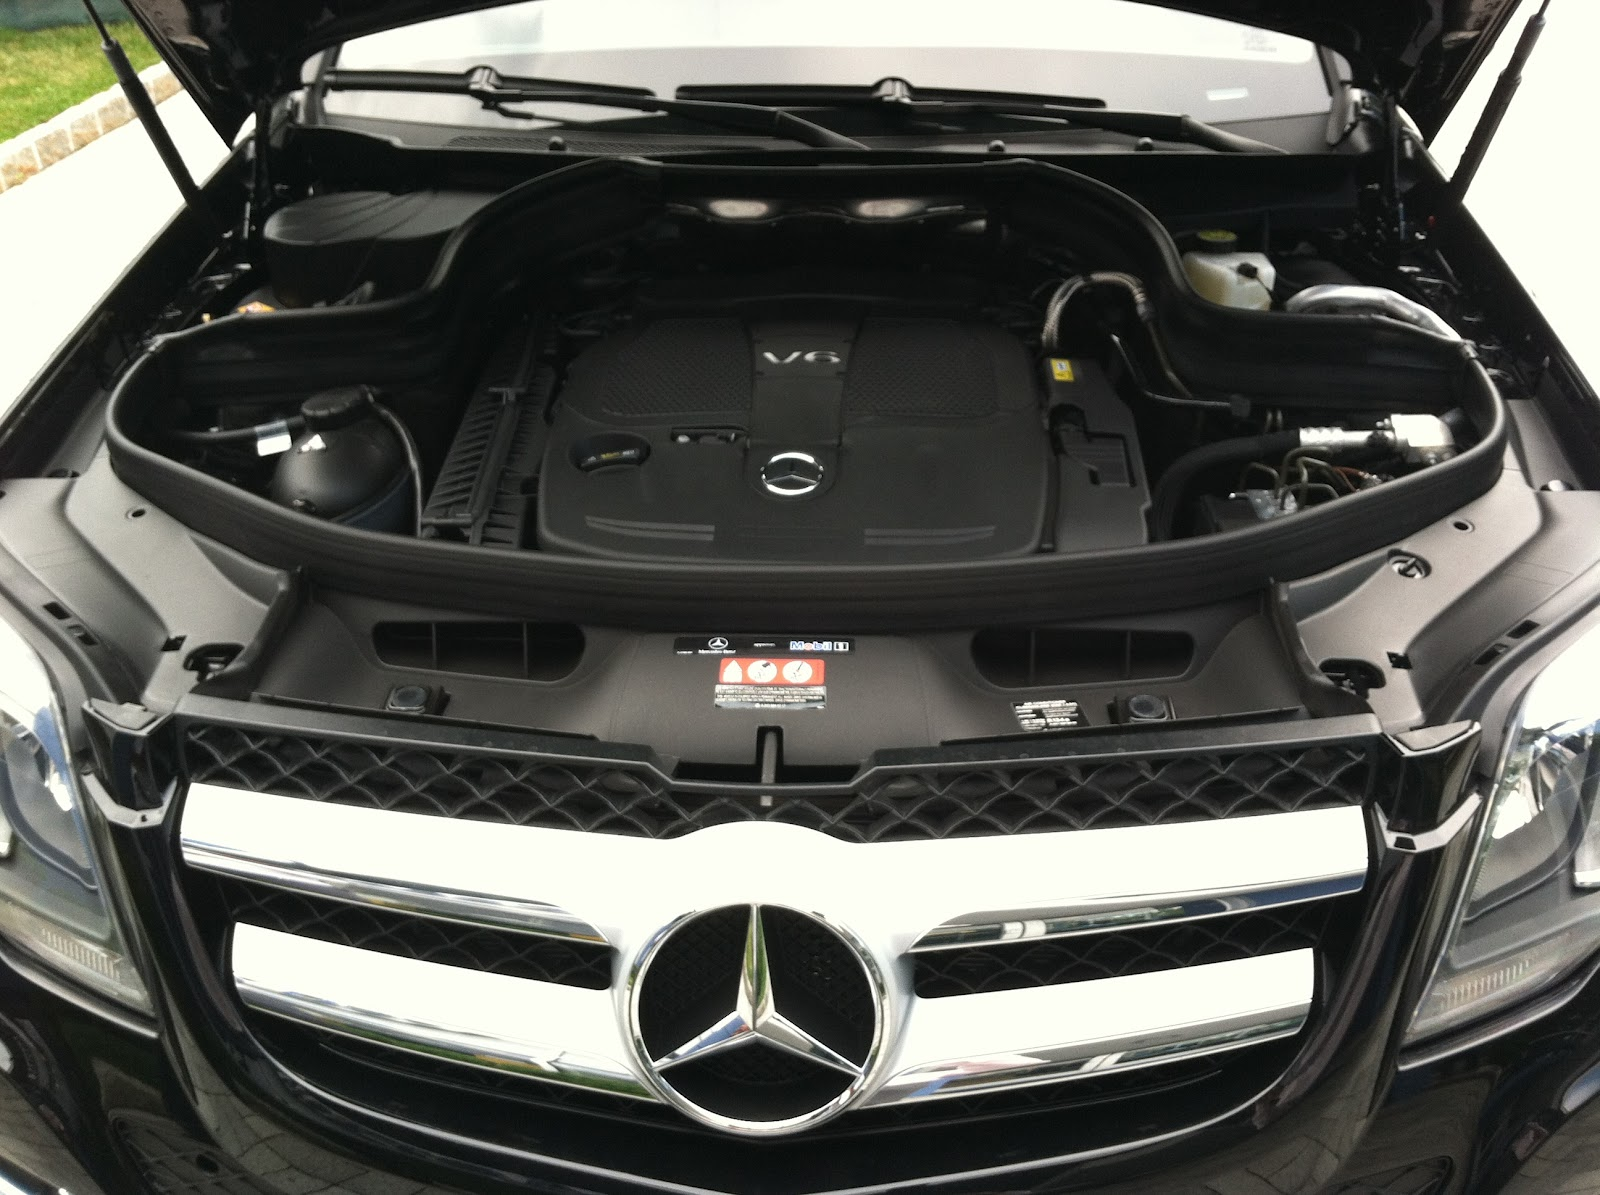 Mercedes benz of white plains the all new redesigned for Mercedes benz white plains service